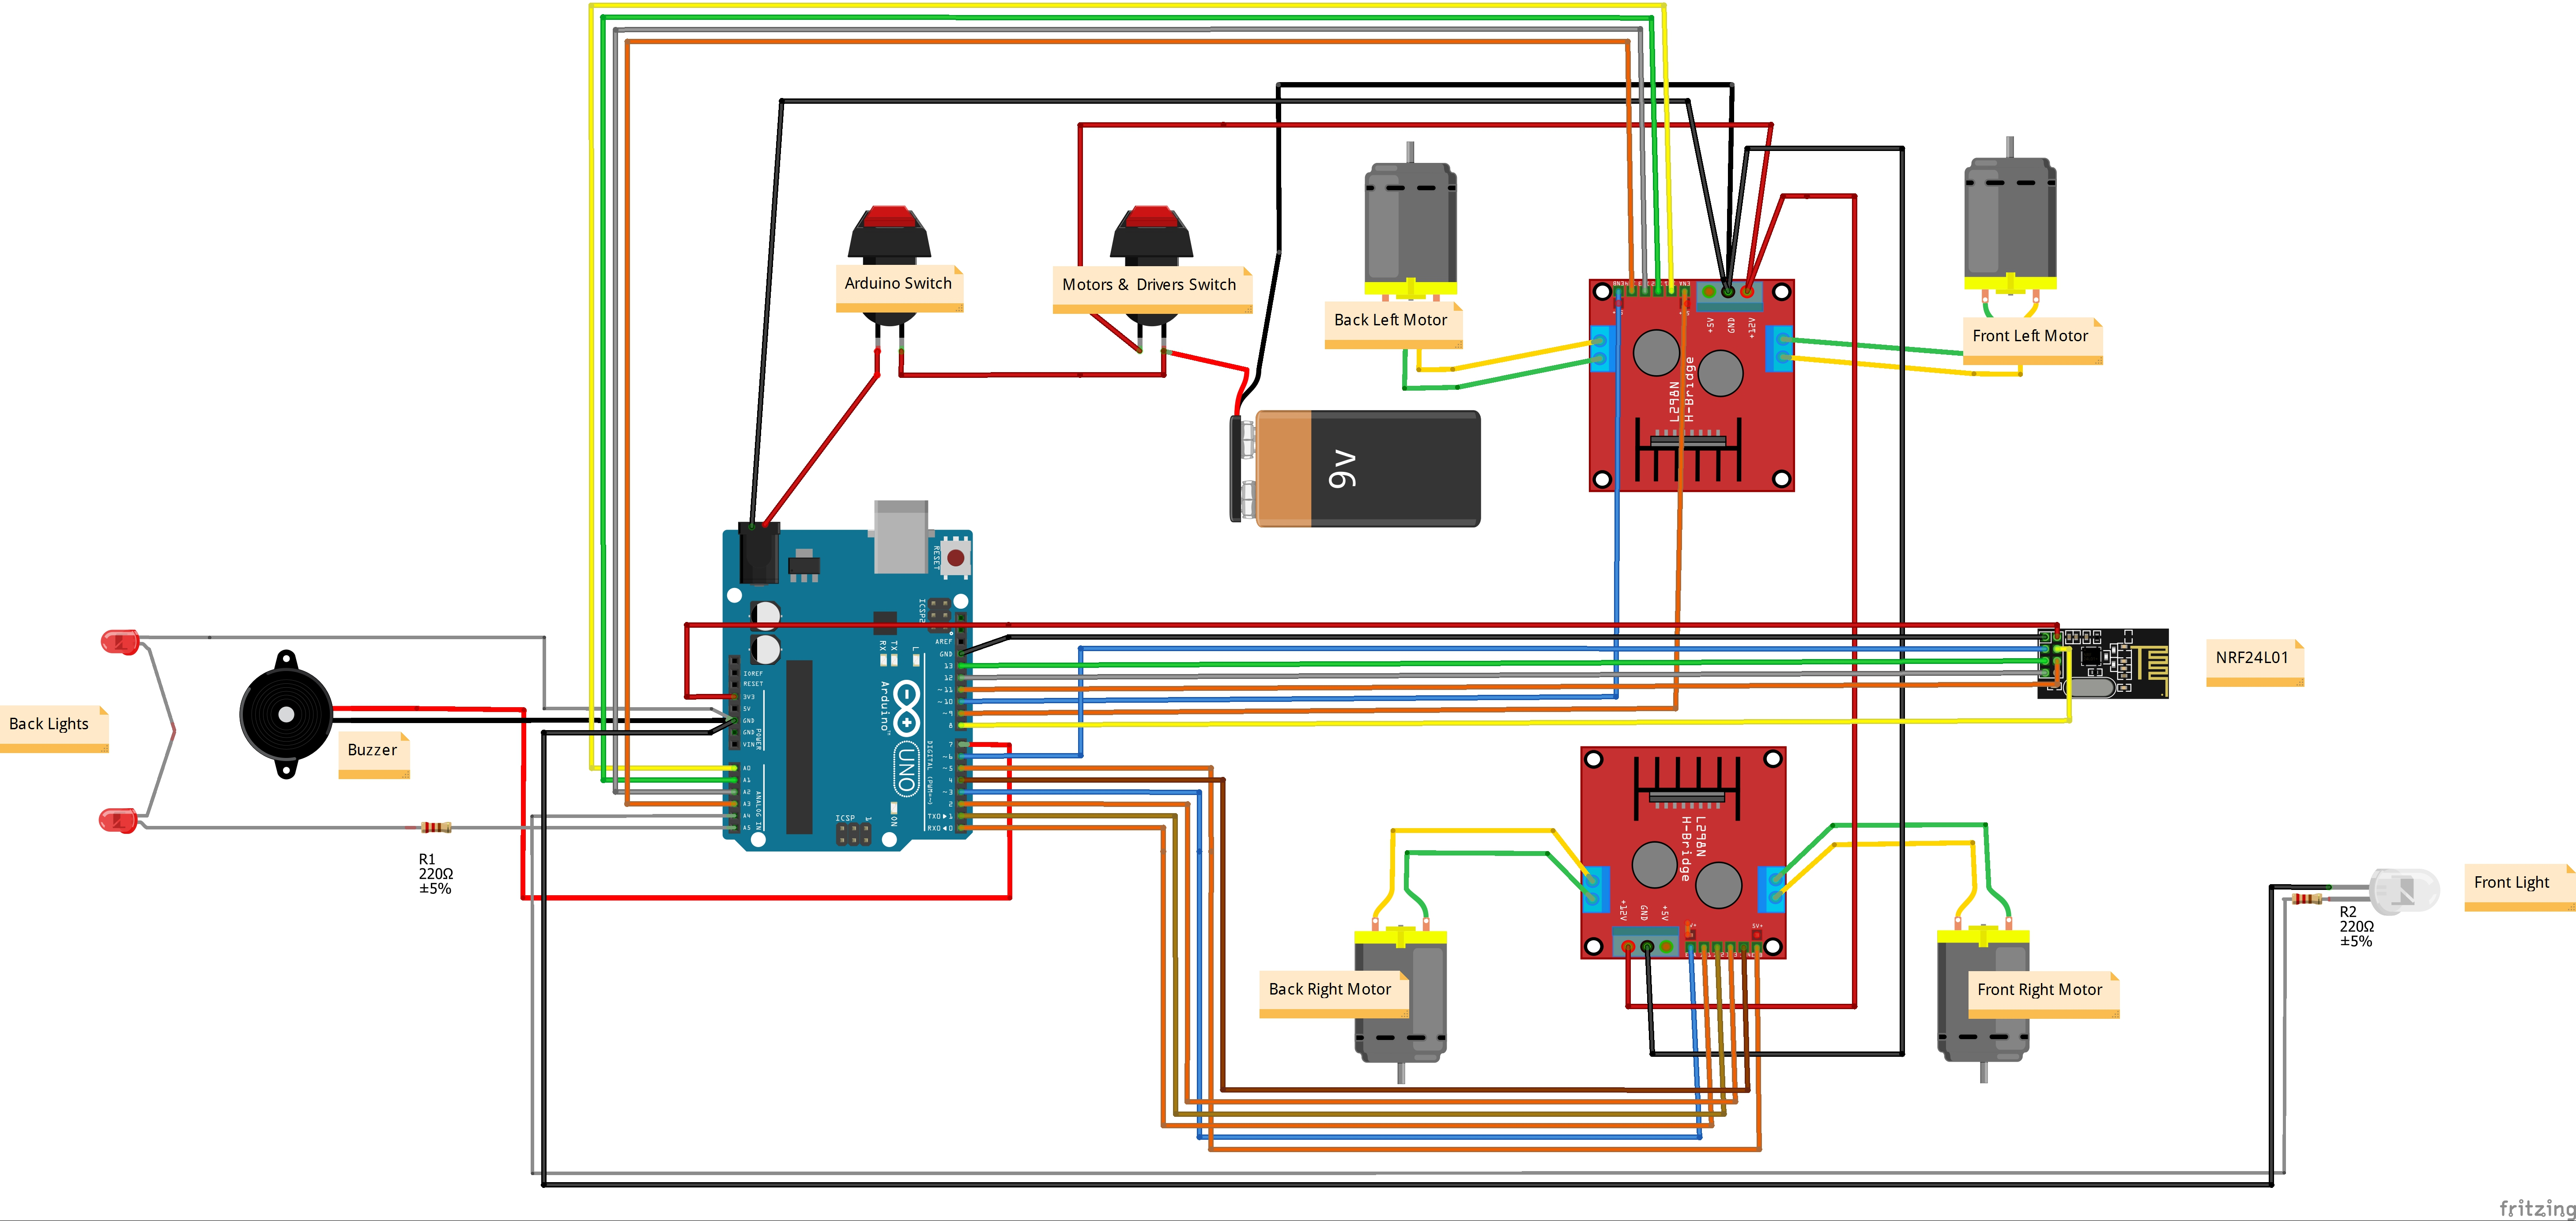 Wiring Diagrams For Cars Electrical Wiring Diagrams For Cars Wiring